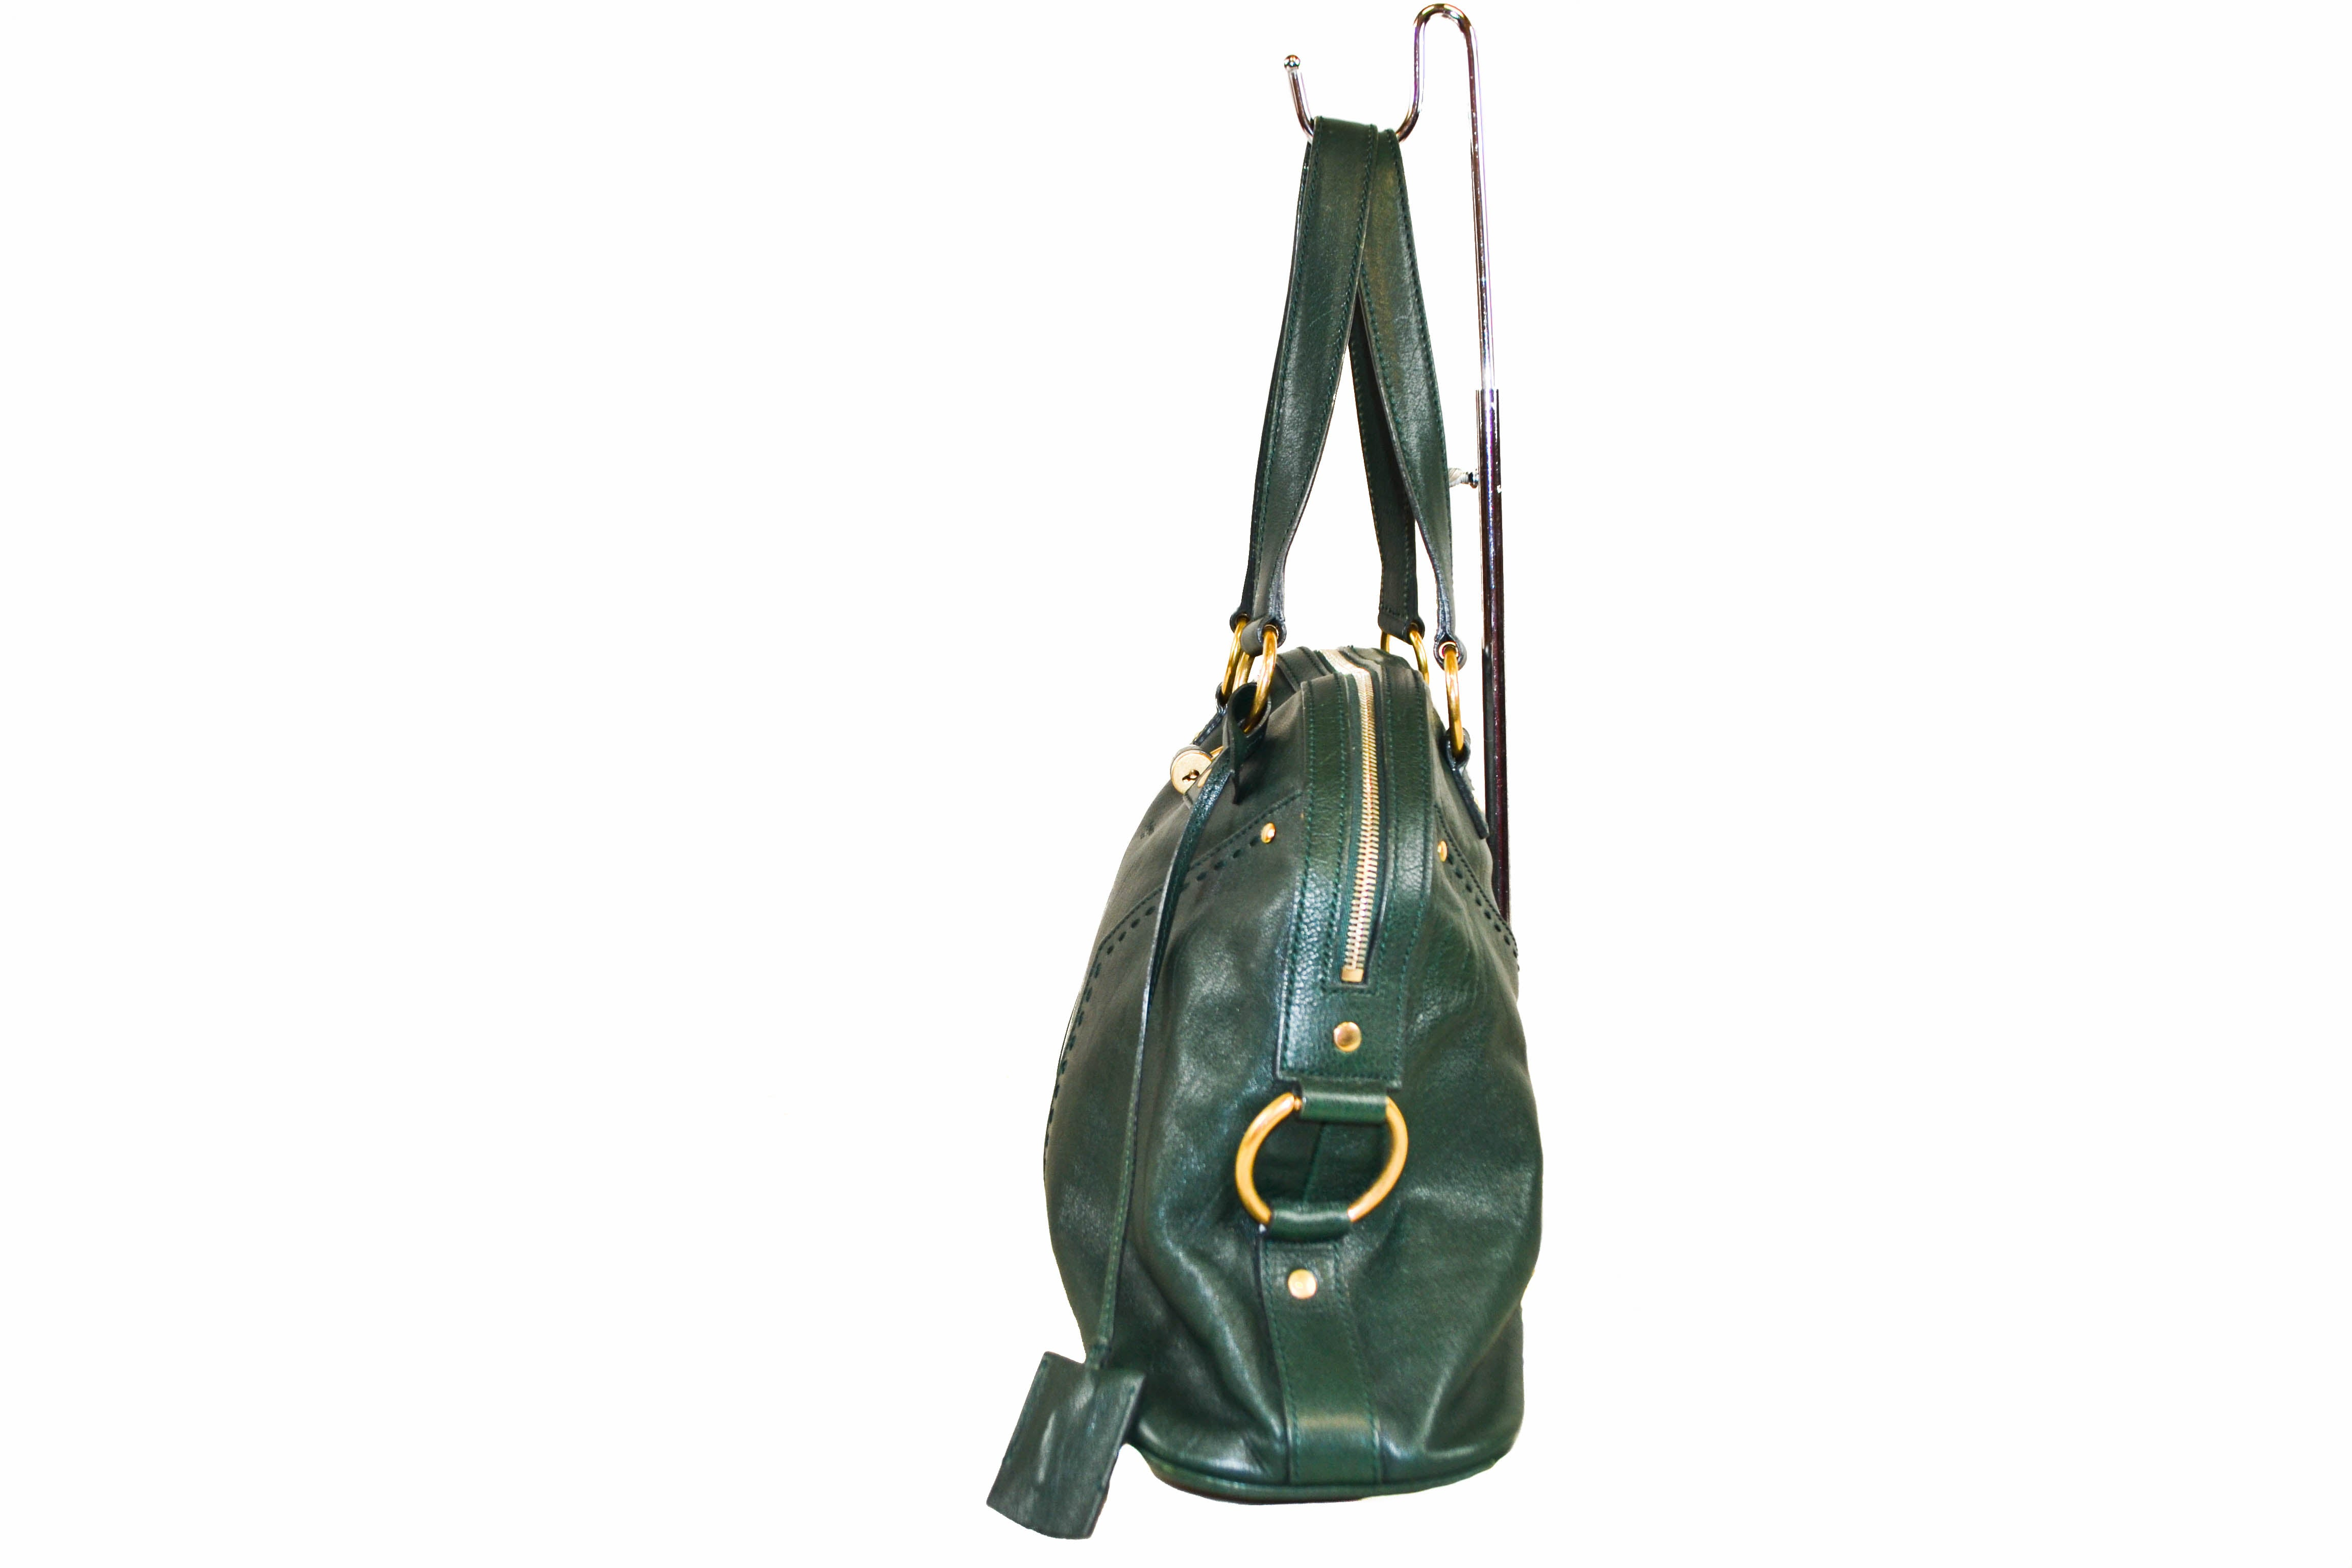 ... Authentic YSL Yves Saint Laurent Green Leather Muse Shoulder Bag ... 15a8b3aa7fba3